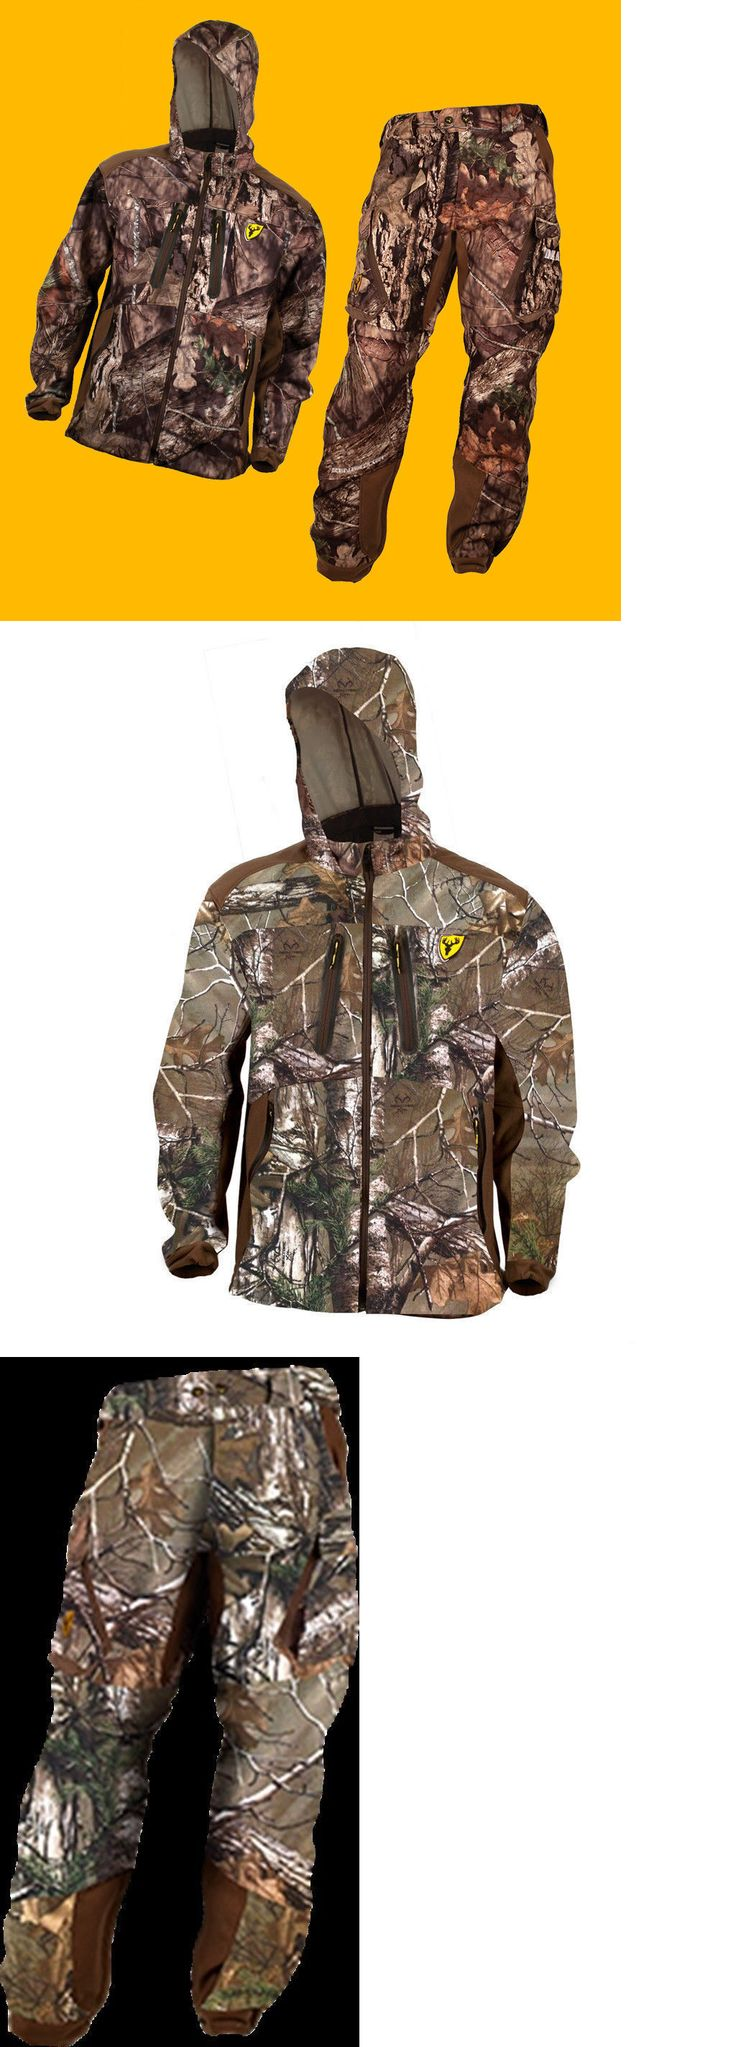 Jacket and Pant Sets 177872: Scentblocker Dead Quiet Jacket And Pants Suit Realtree Xtra Camo - Mens Large -> BUY IT NOW ONLY: $159.95 on eBay!